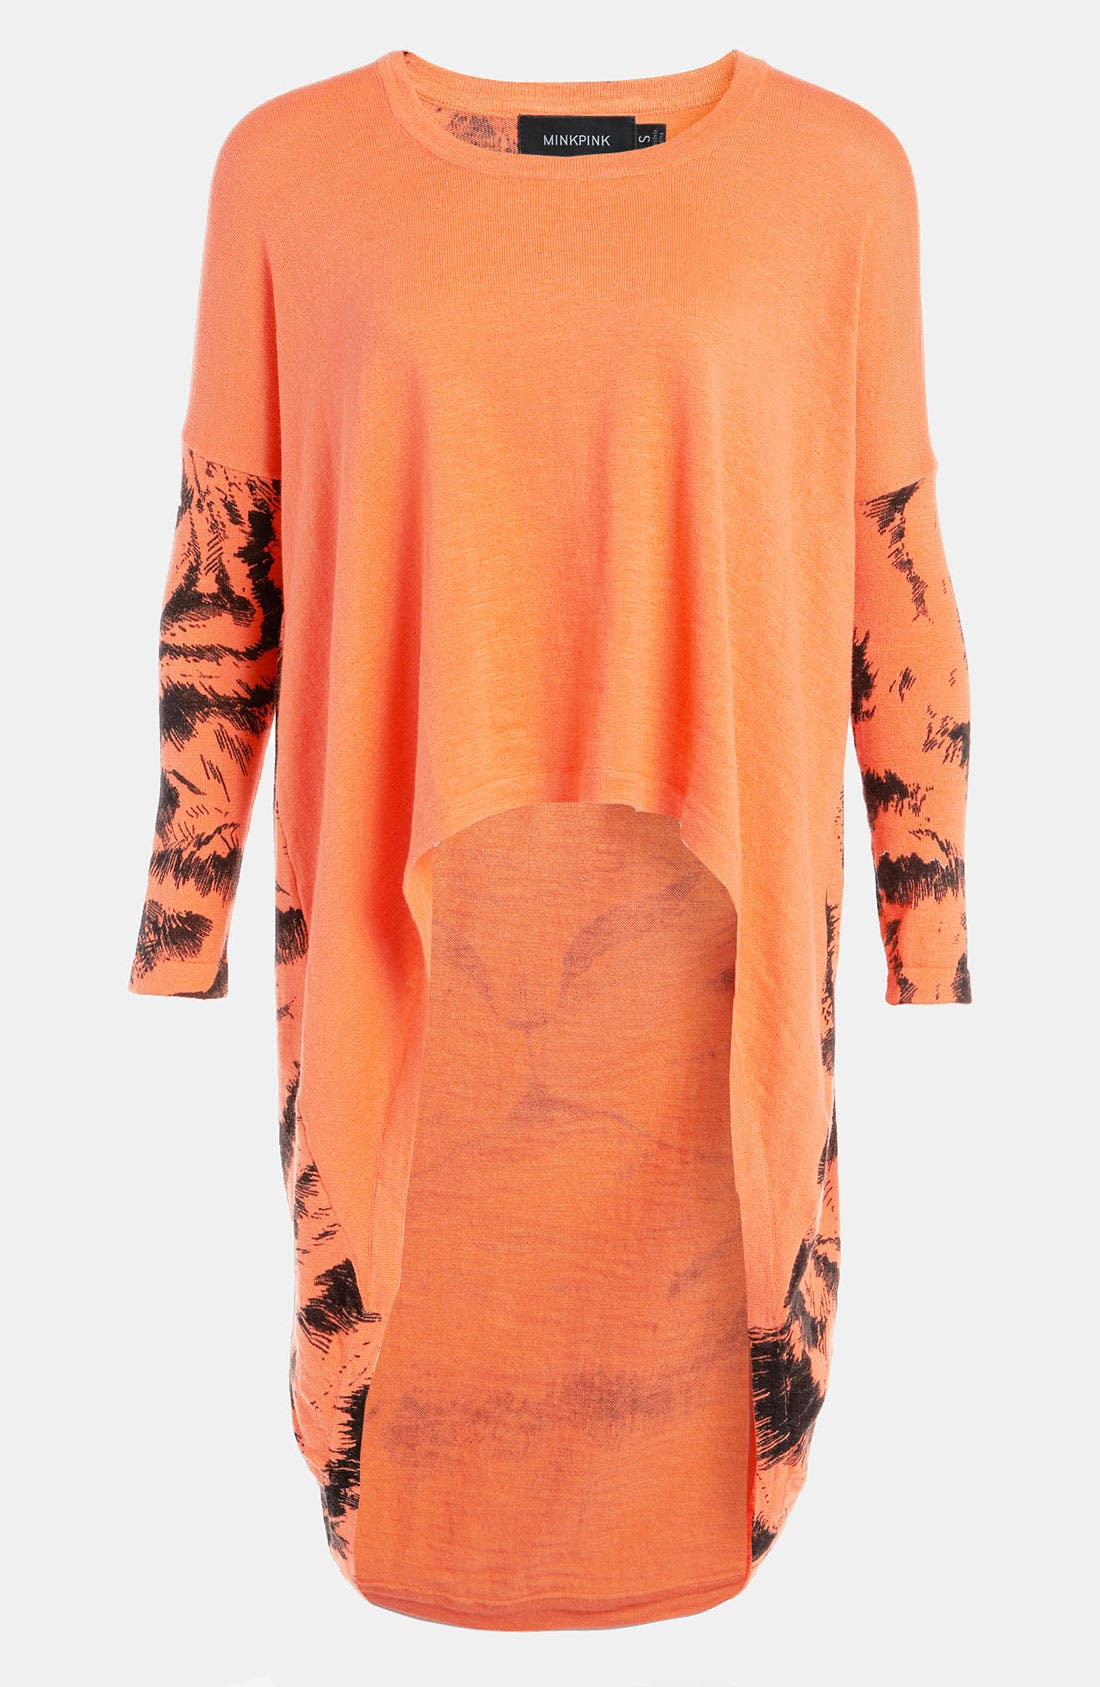 Alternate Image 1 Selected - MINKPINK 'Watch Your Back' Oversized High/Low Knit Top